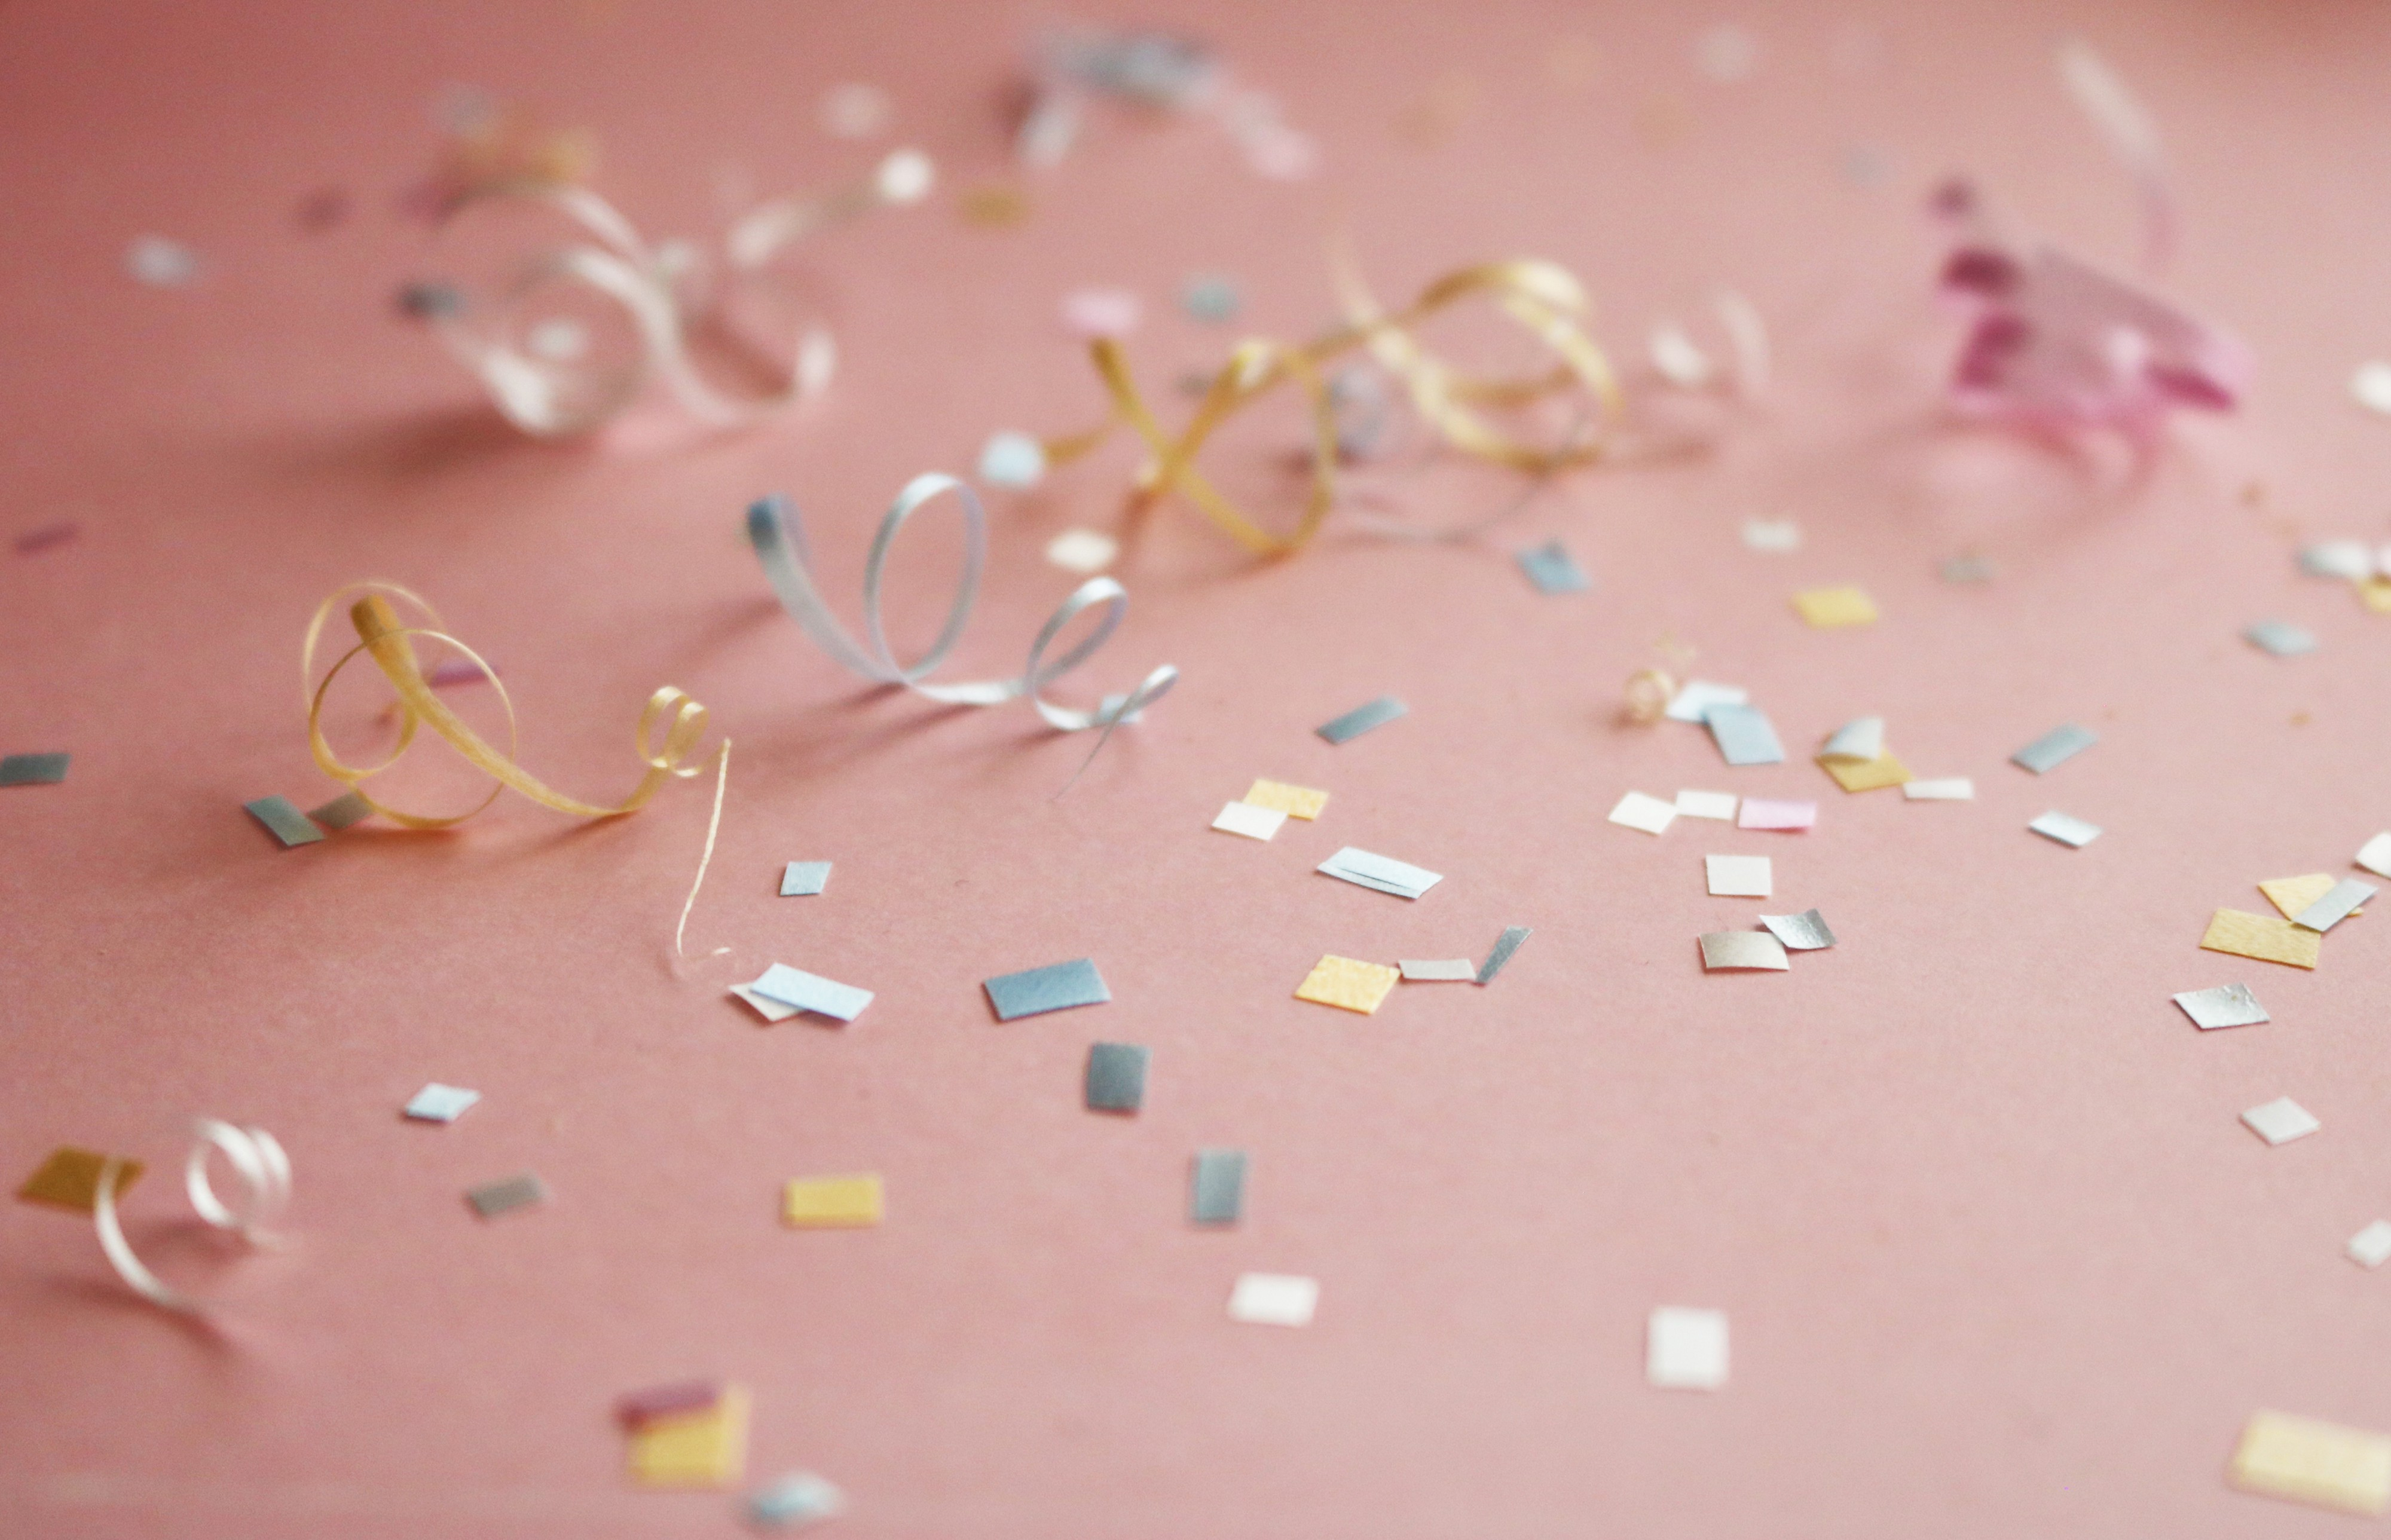 Confetti on a pink background